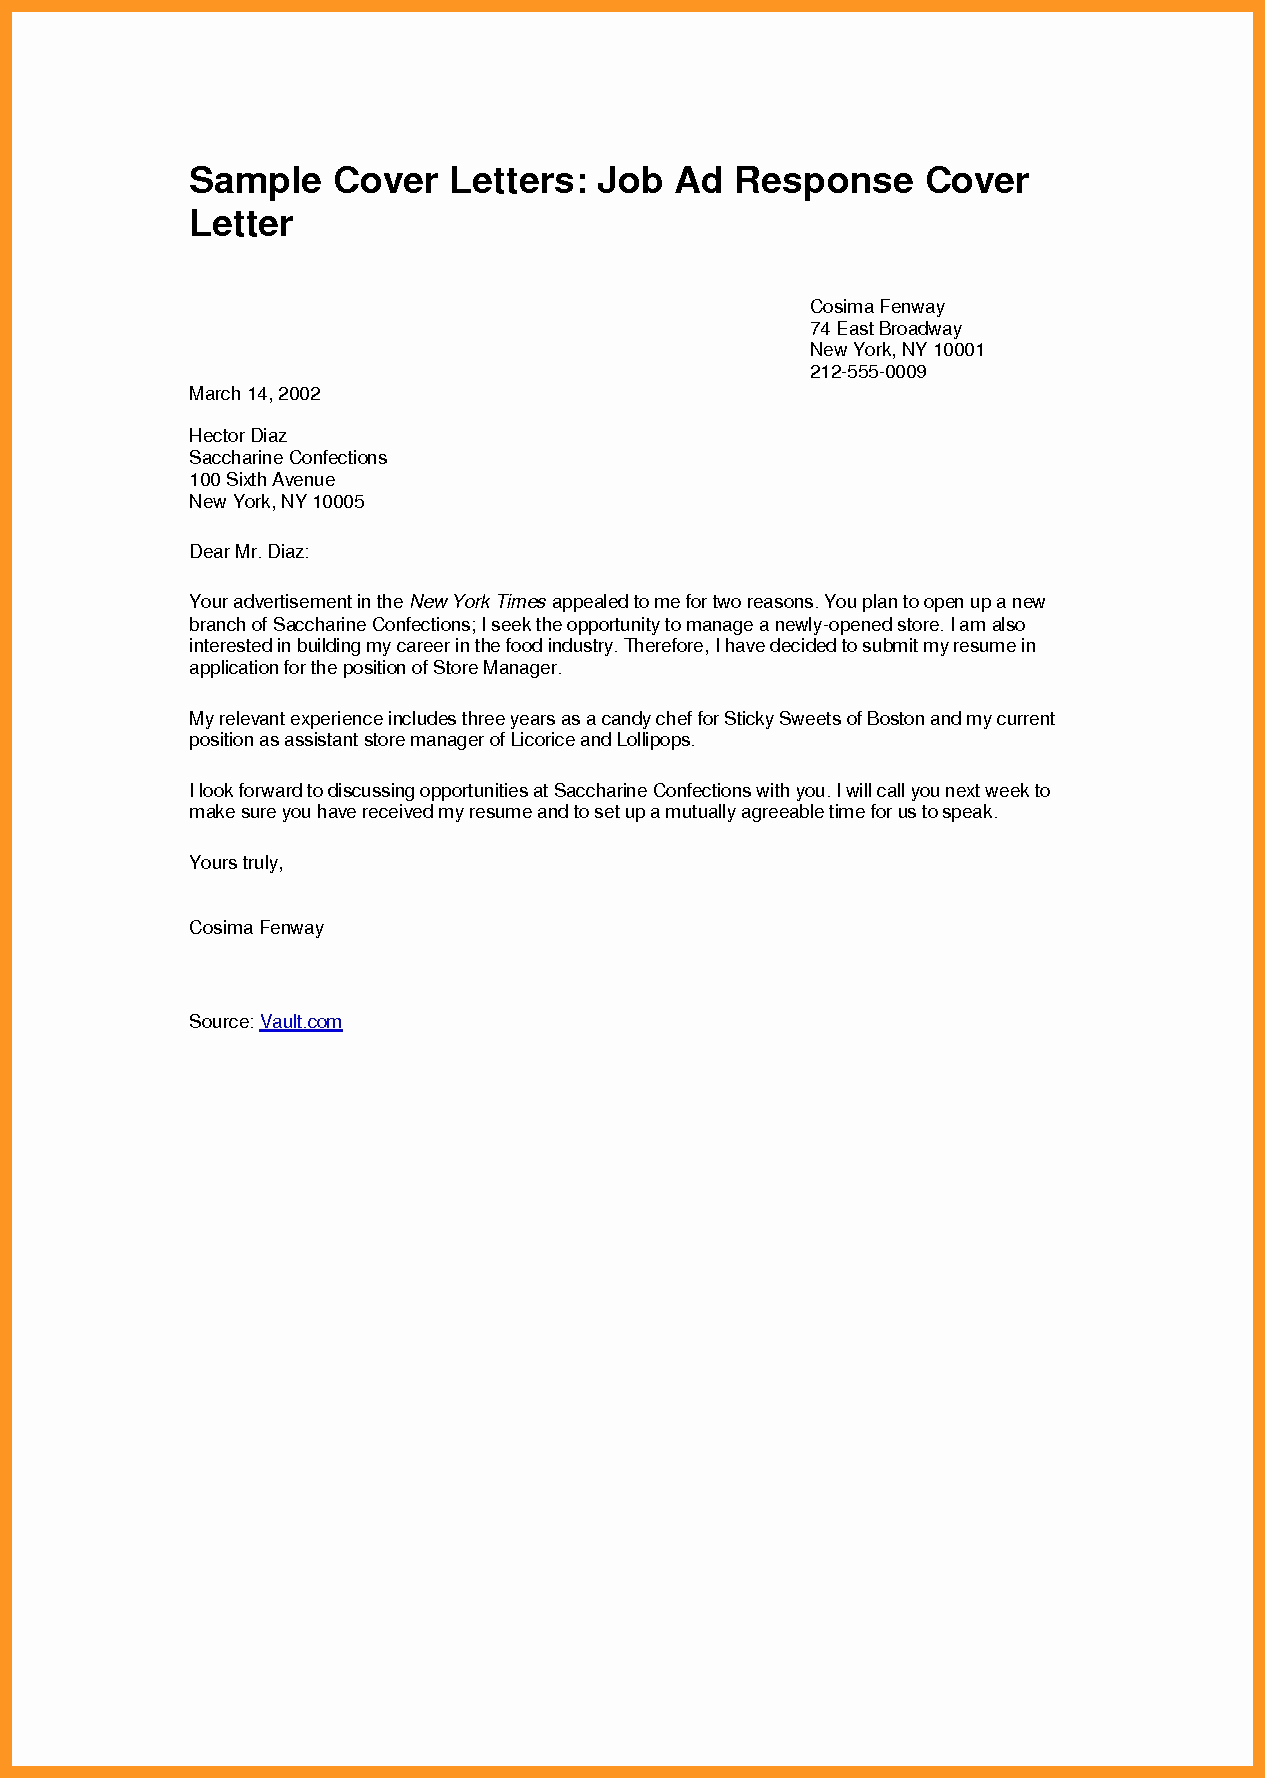 Free Job Cover Letter Template Fresh Cover Letter for Job Application Pdf